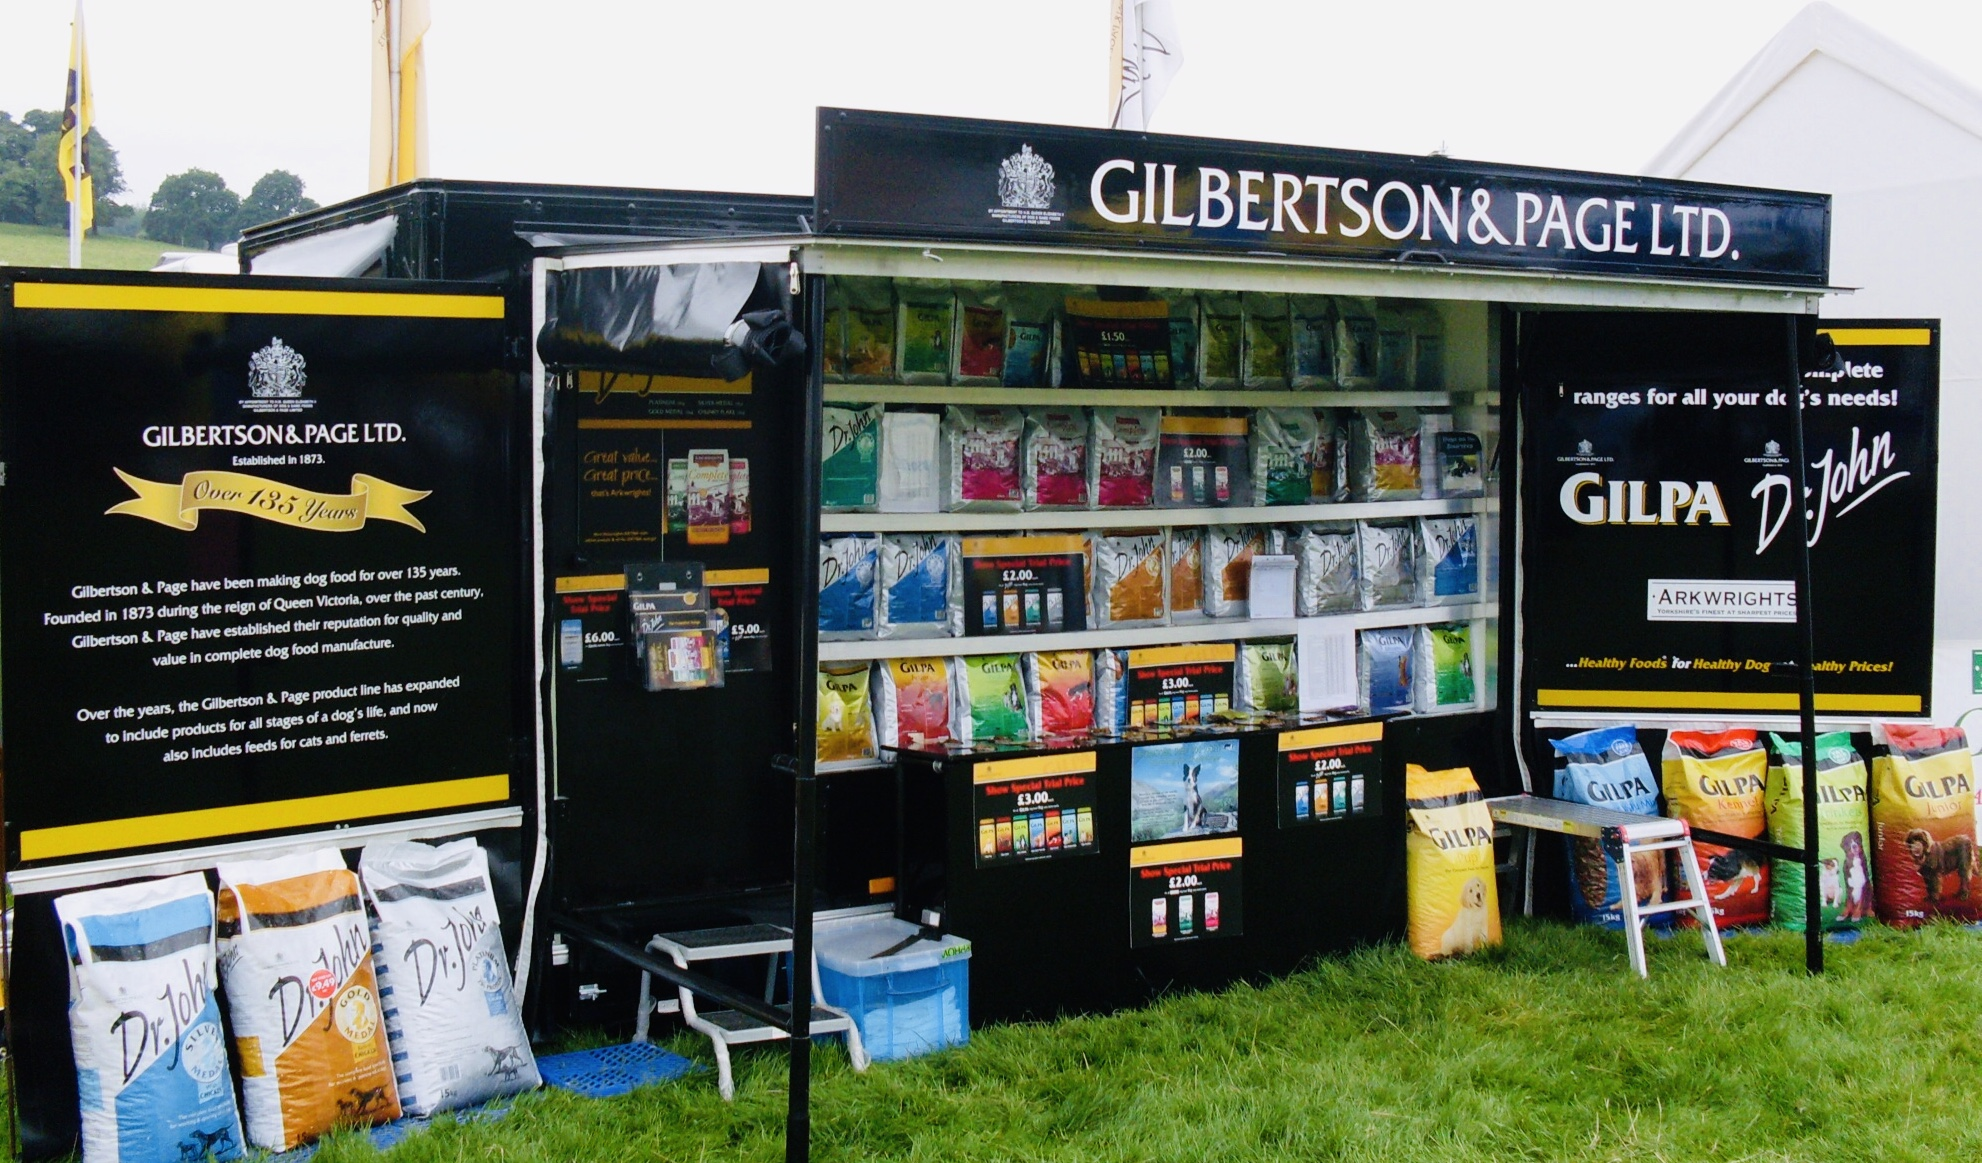 Contract exhibition services outdoor events